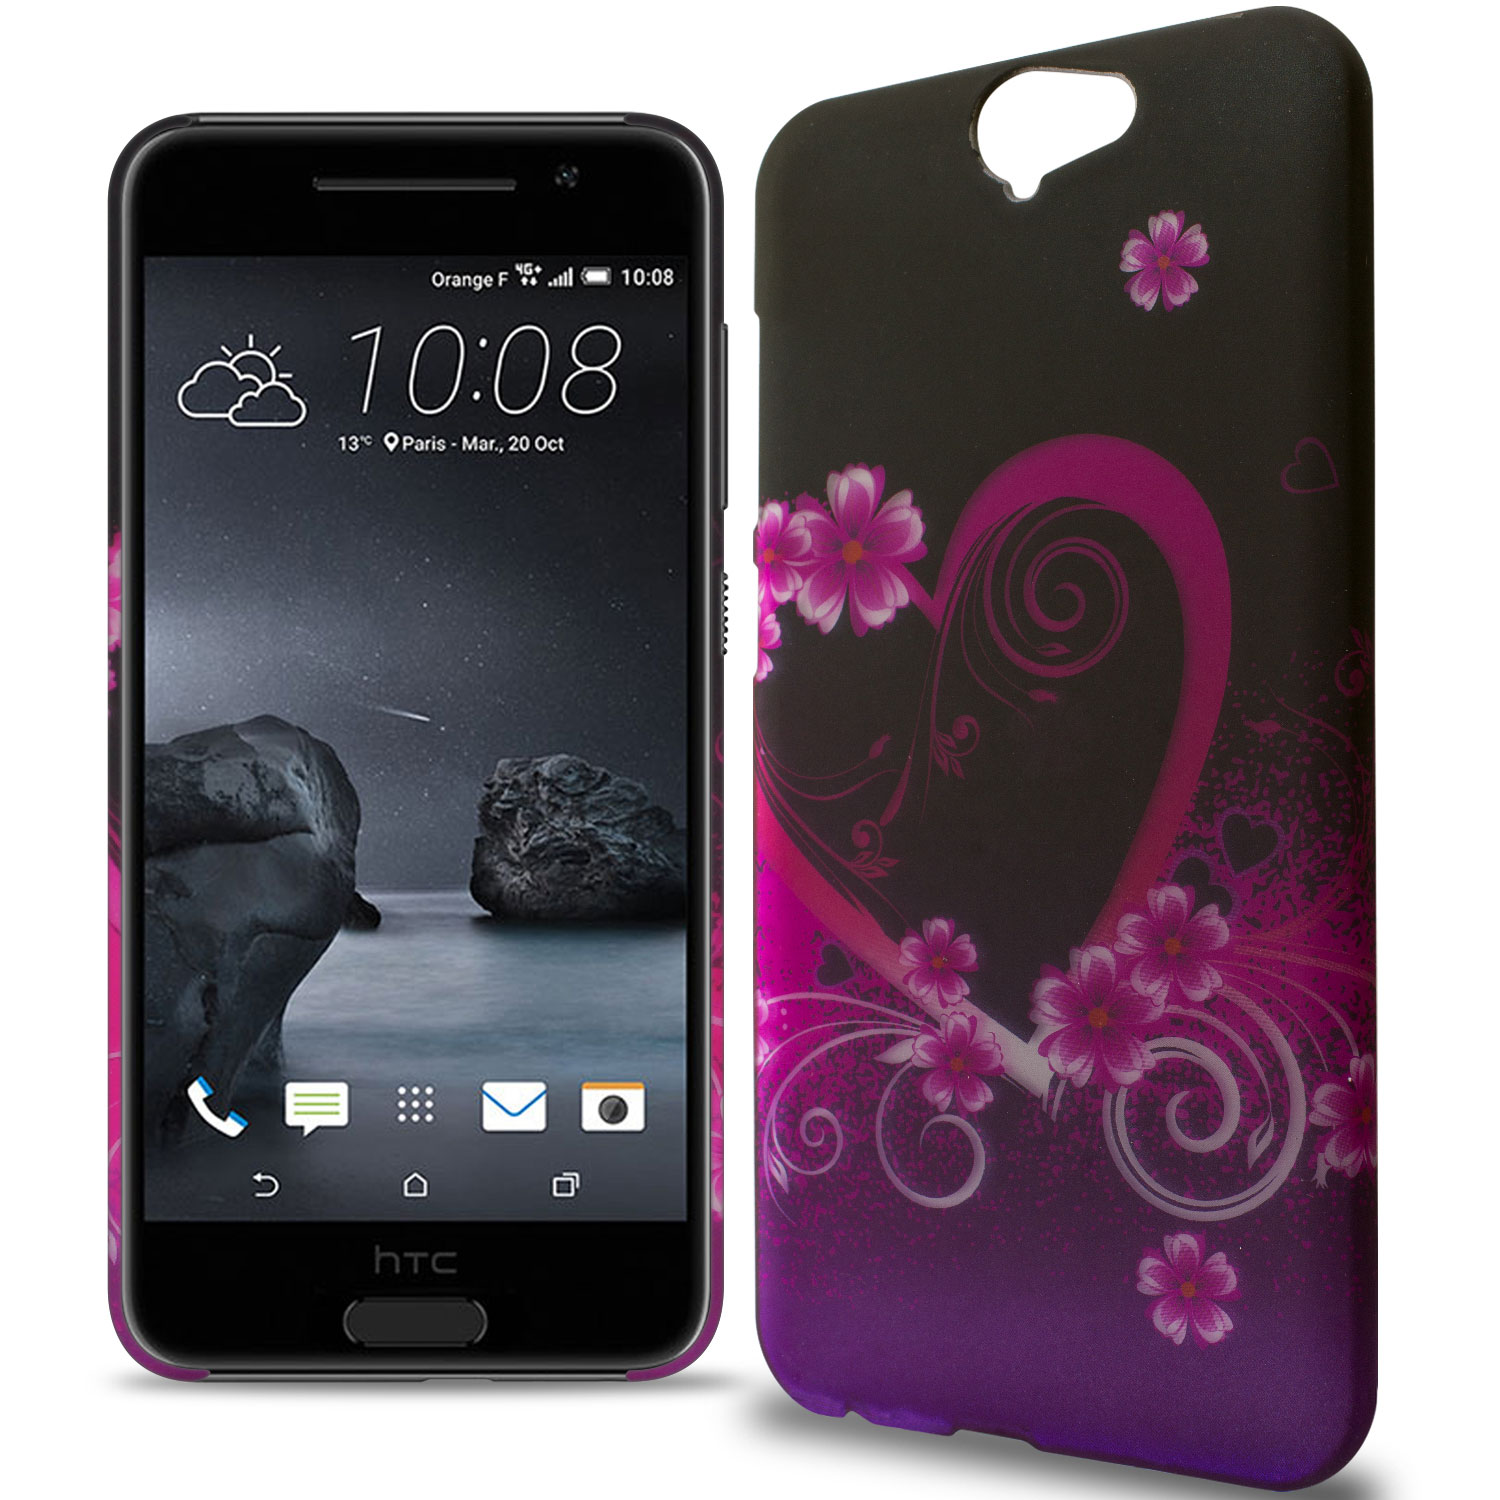 the latest 40b51 a4c04 Details about Hard Phone Case for HTC One A9 - Purple Love Design Slim  Protective Back Cover